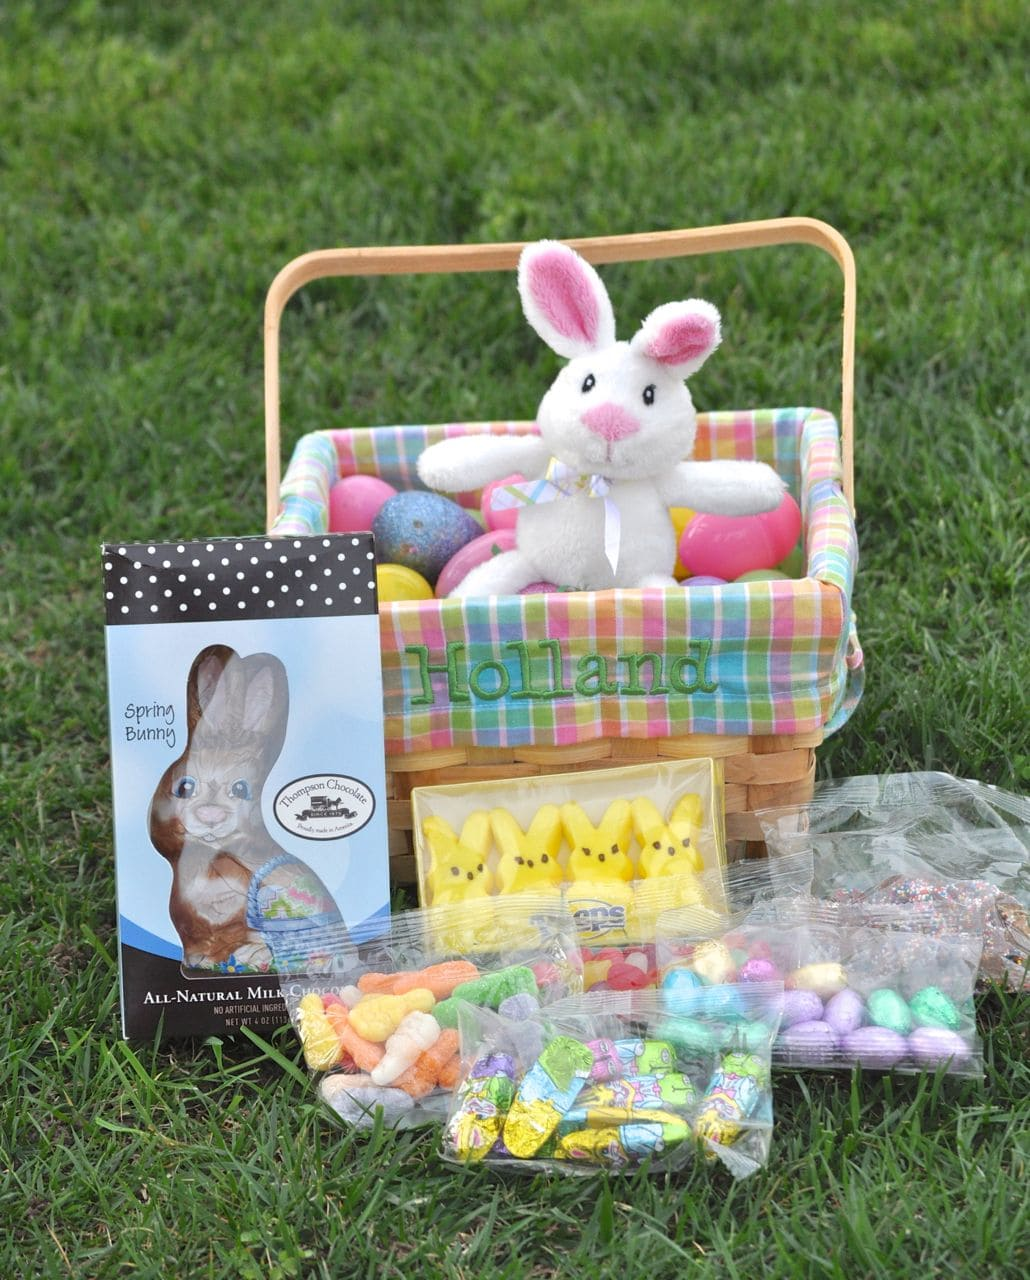 Our annual easter egg hunt make life lovely easter baskets from personal creations an amazing online retailer that has all kinds of cute gifts for the holidays and special occasions negle Image collections